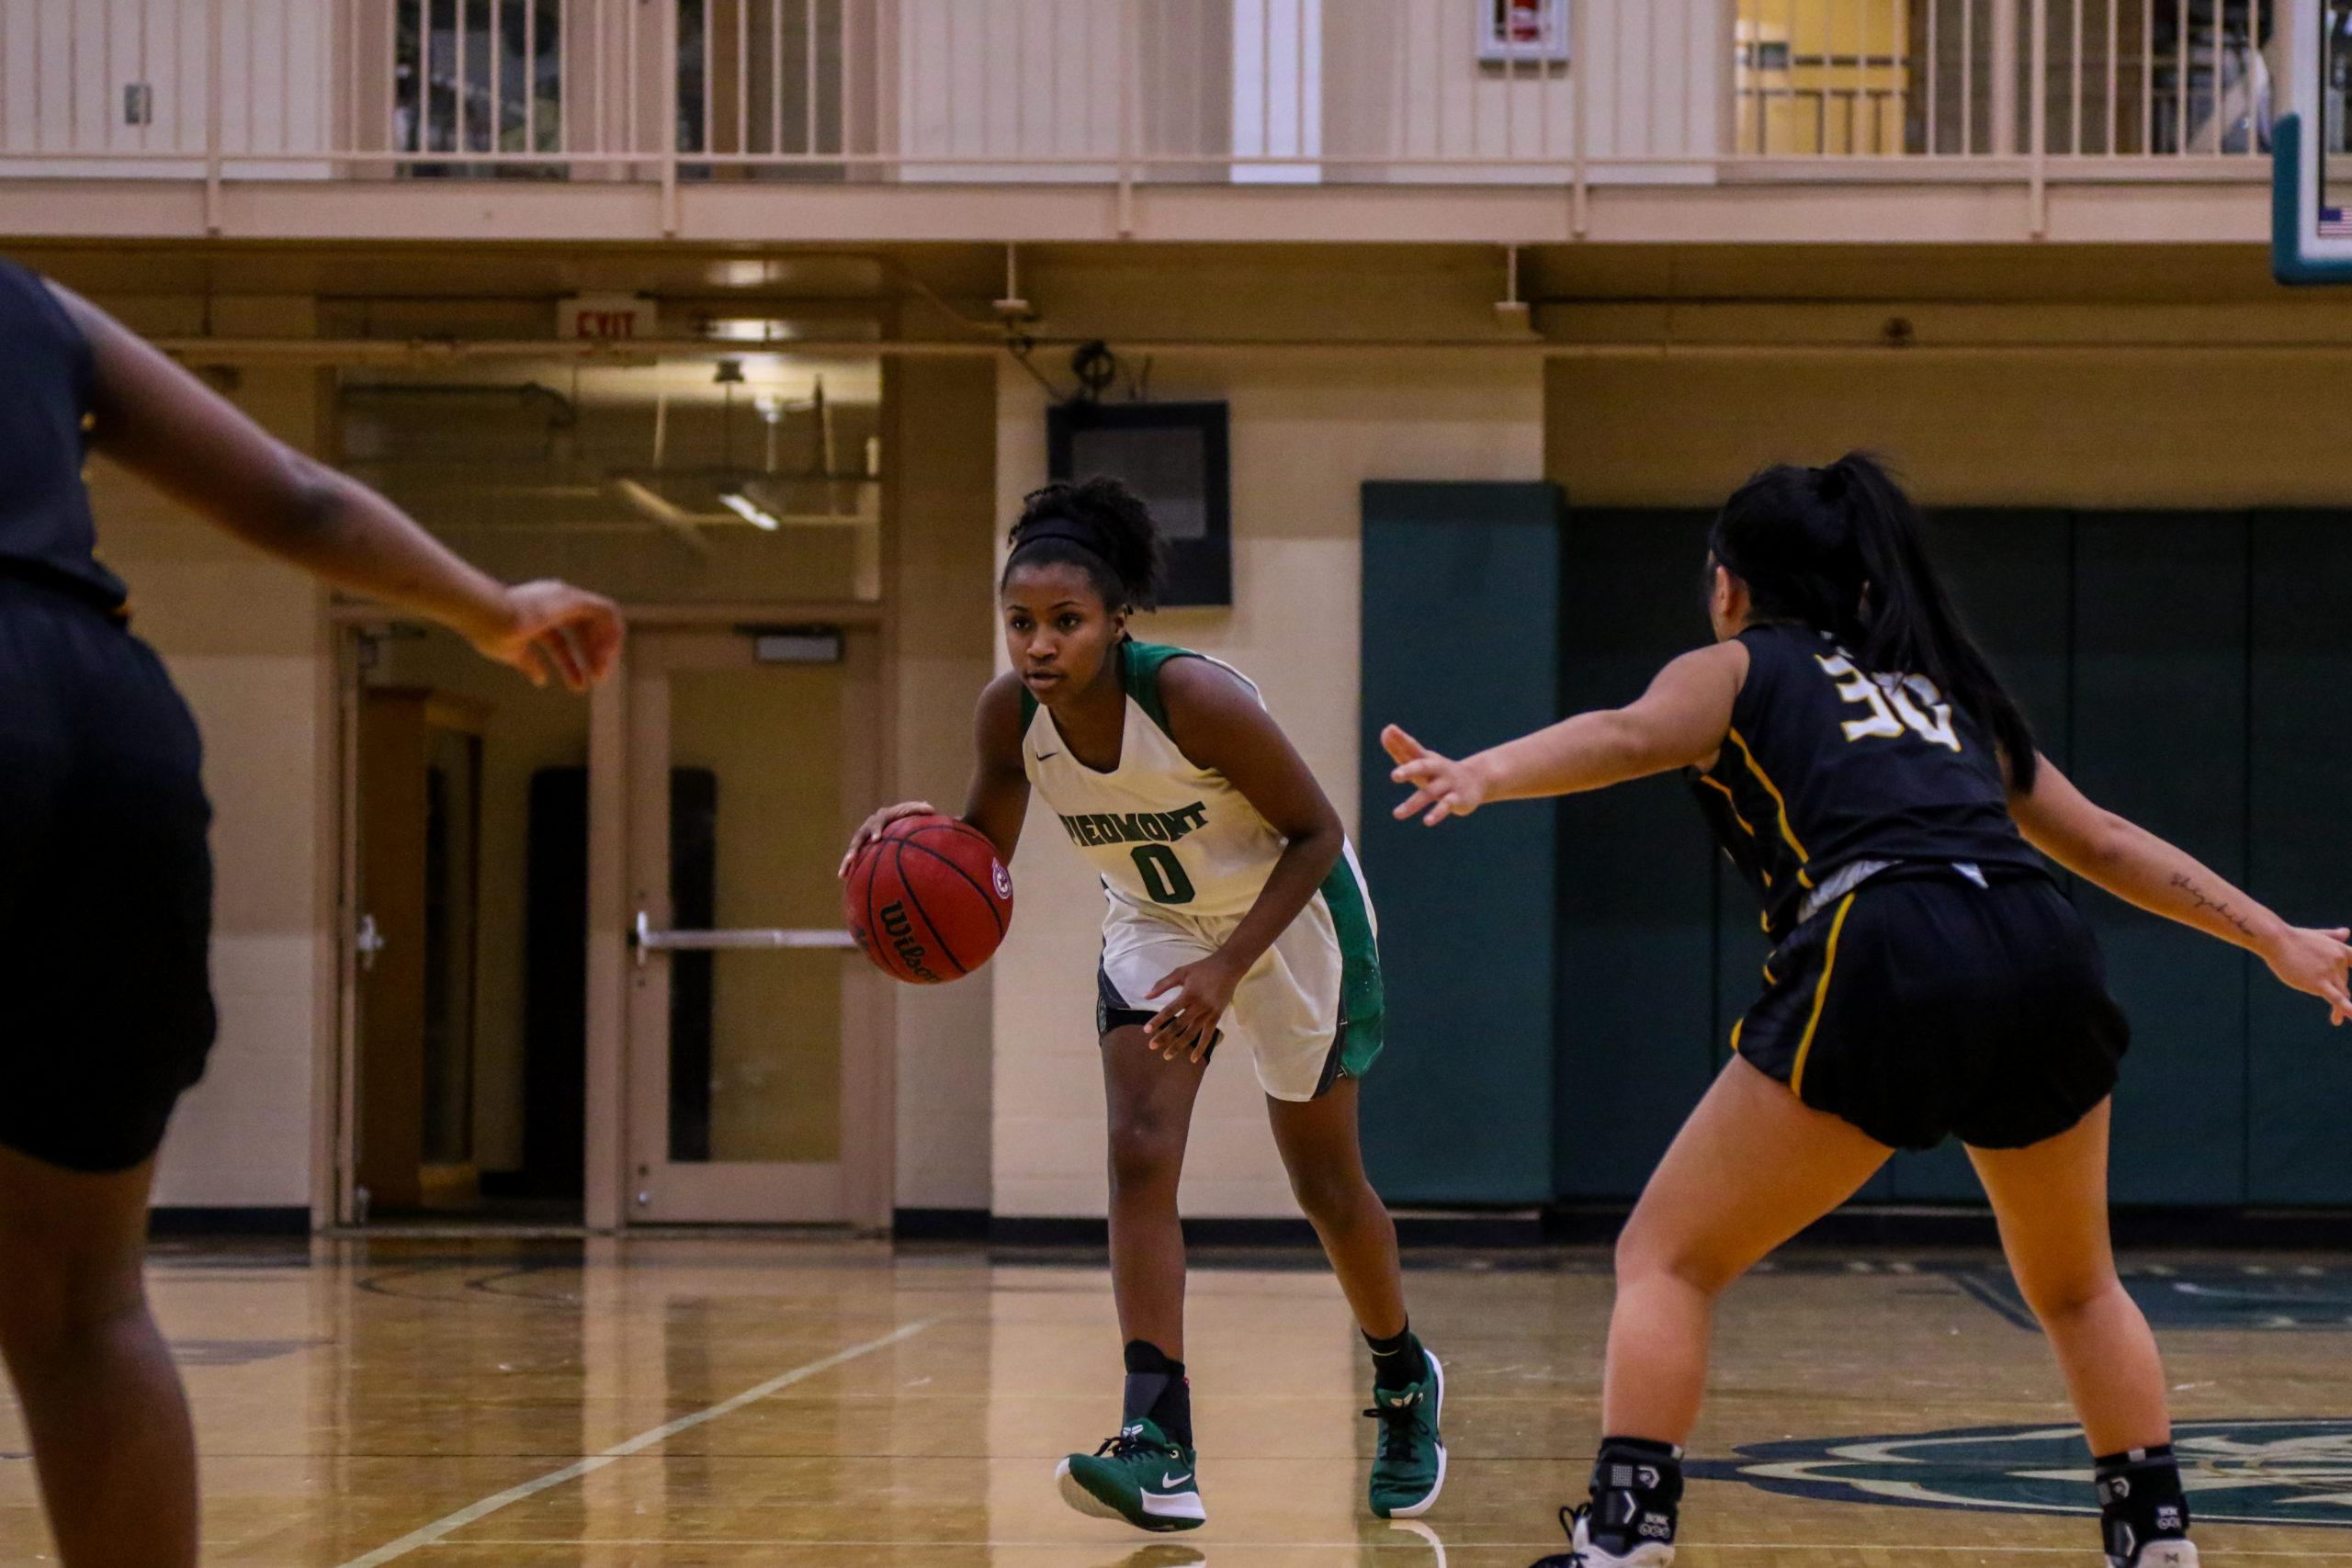 Lady Lions rout Wesleyan, fall to division leader Berea